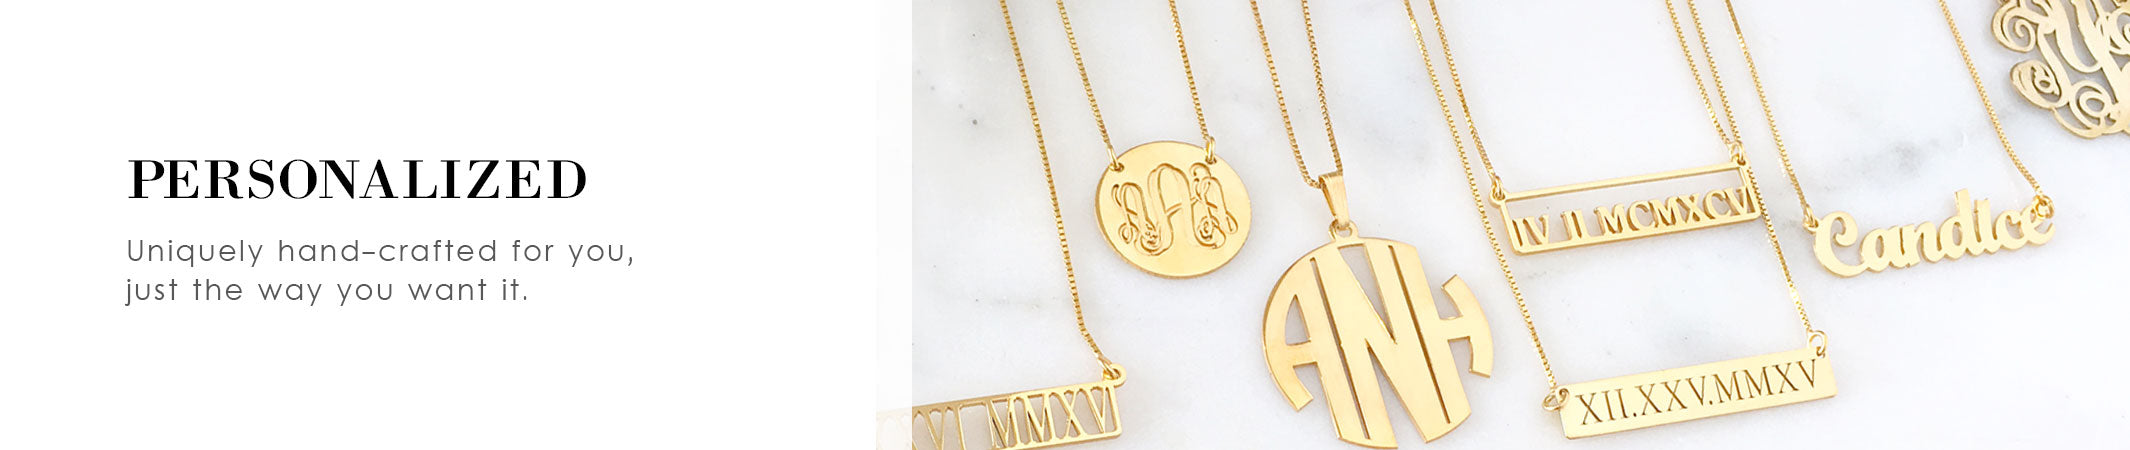 Personalized and Custom Monogram, Initial and Nameplate Jewelry | olive + piper